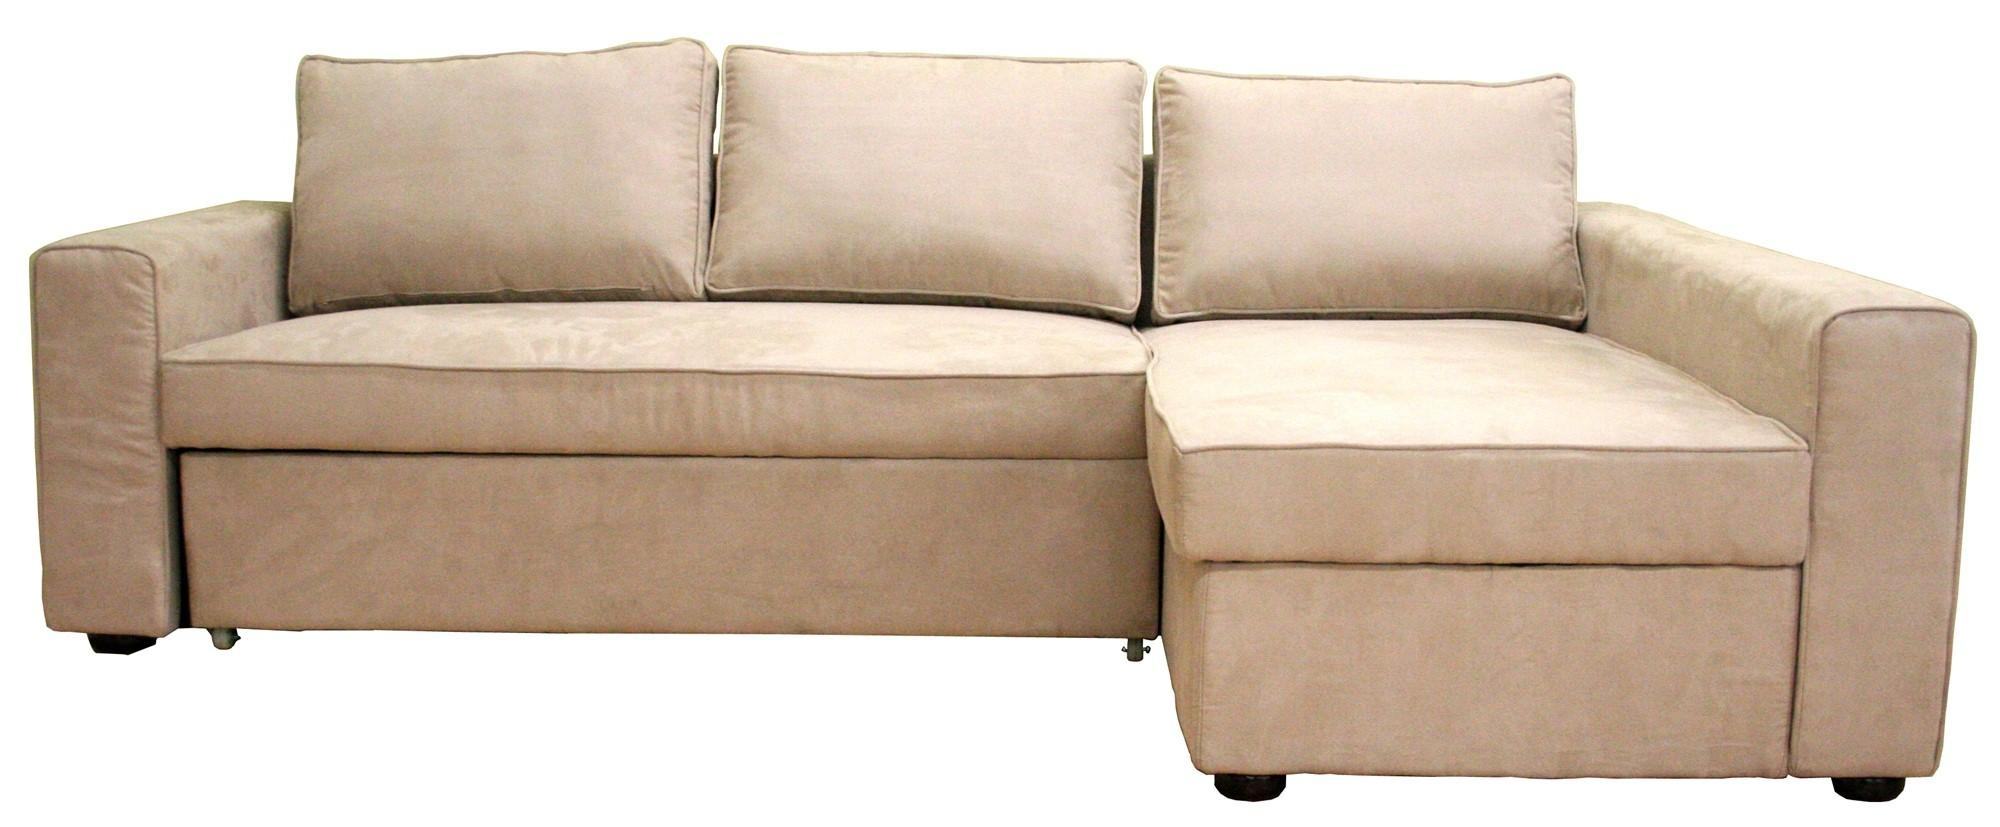 Cindy crawford sleeper sofa cindy crawford home newport for Best sleeper sectional